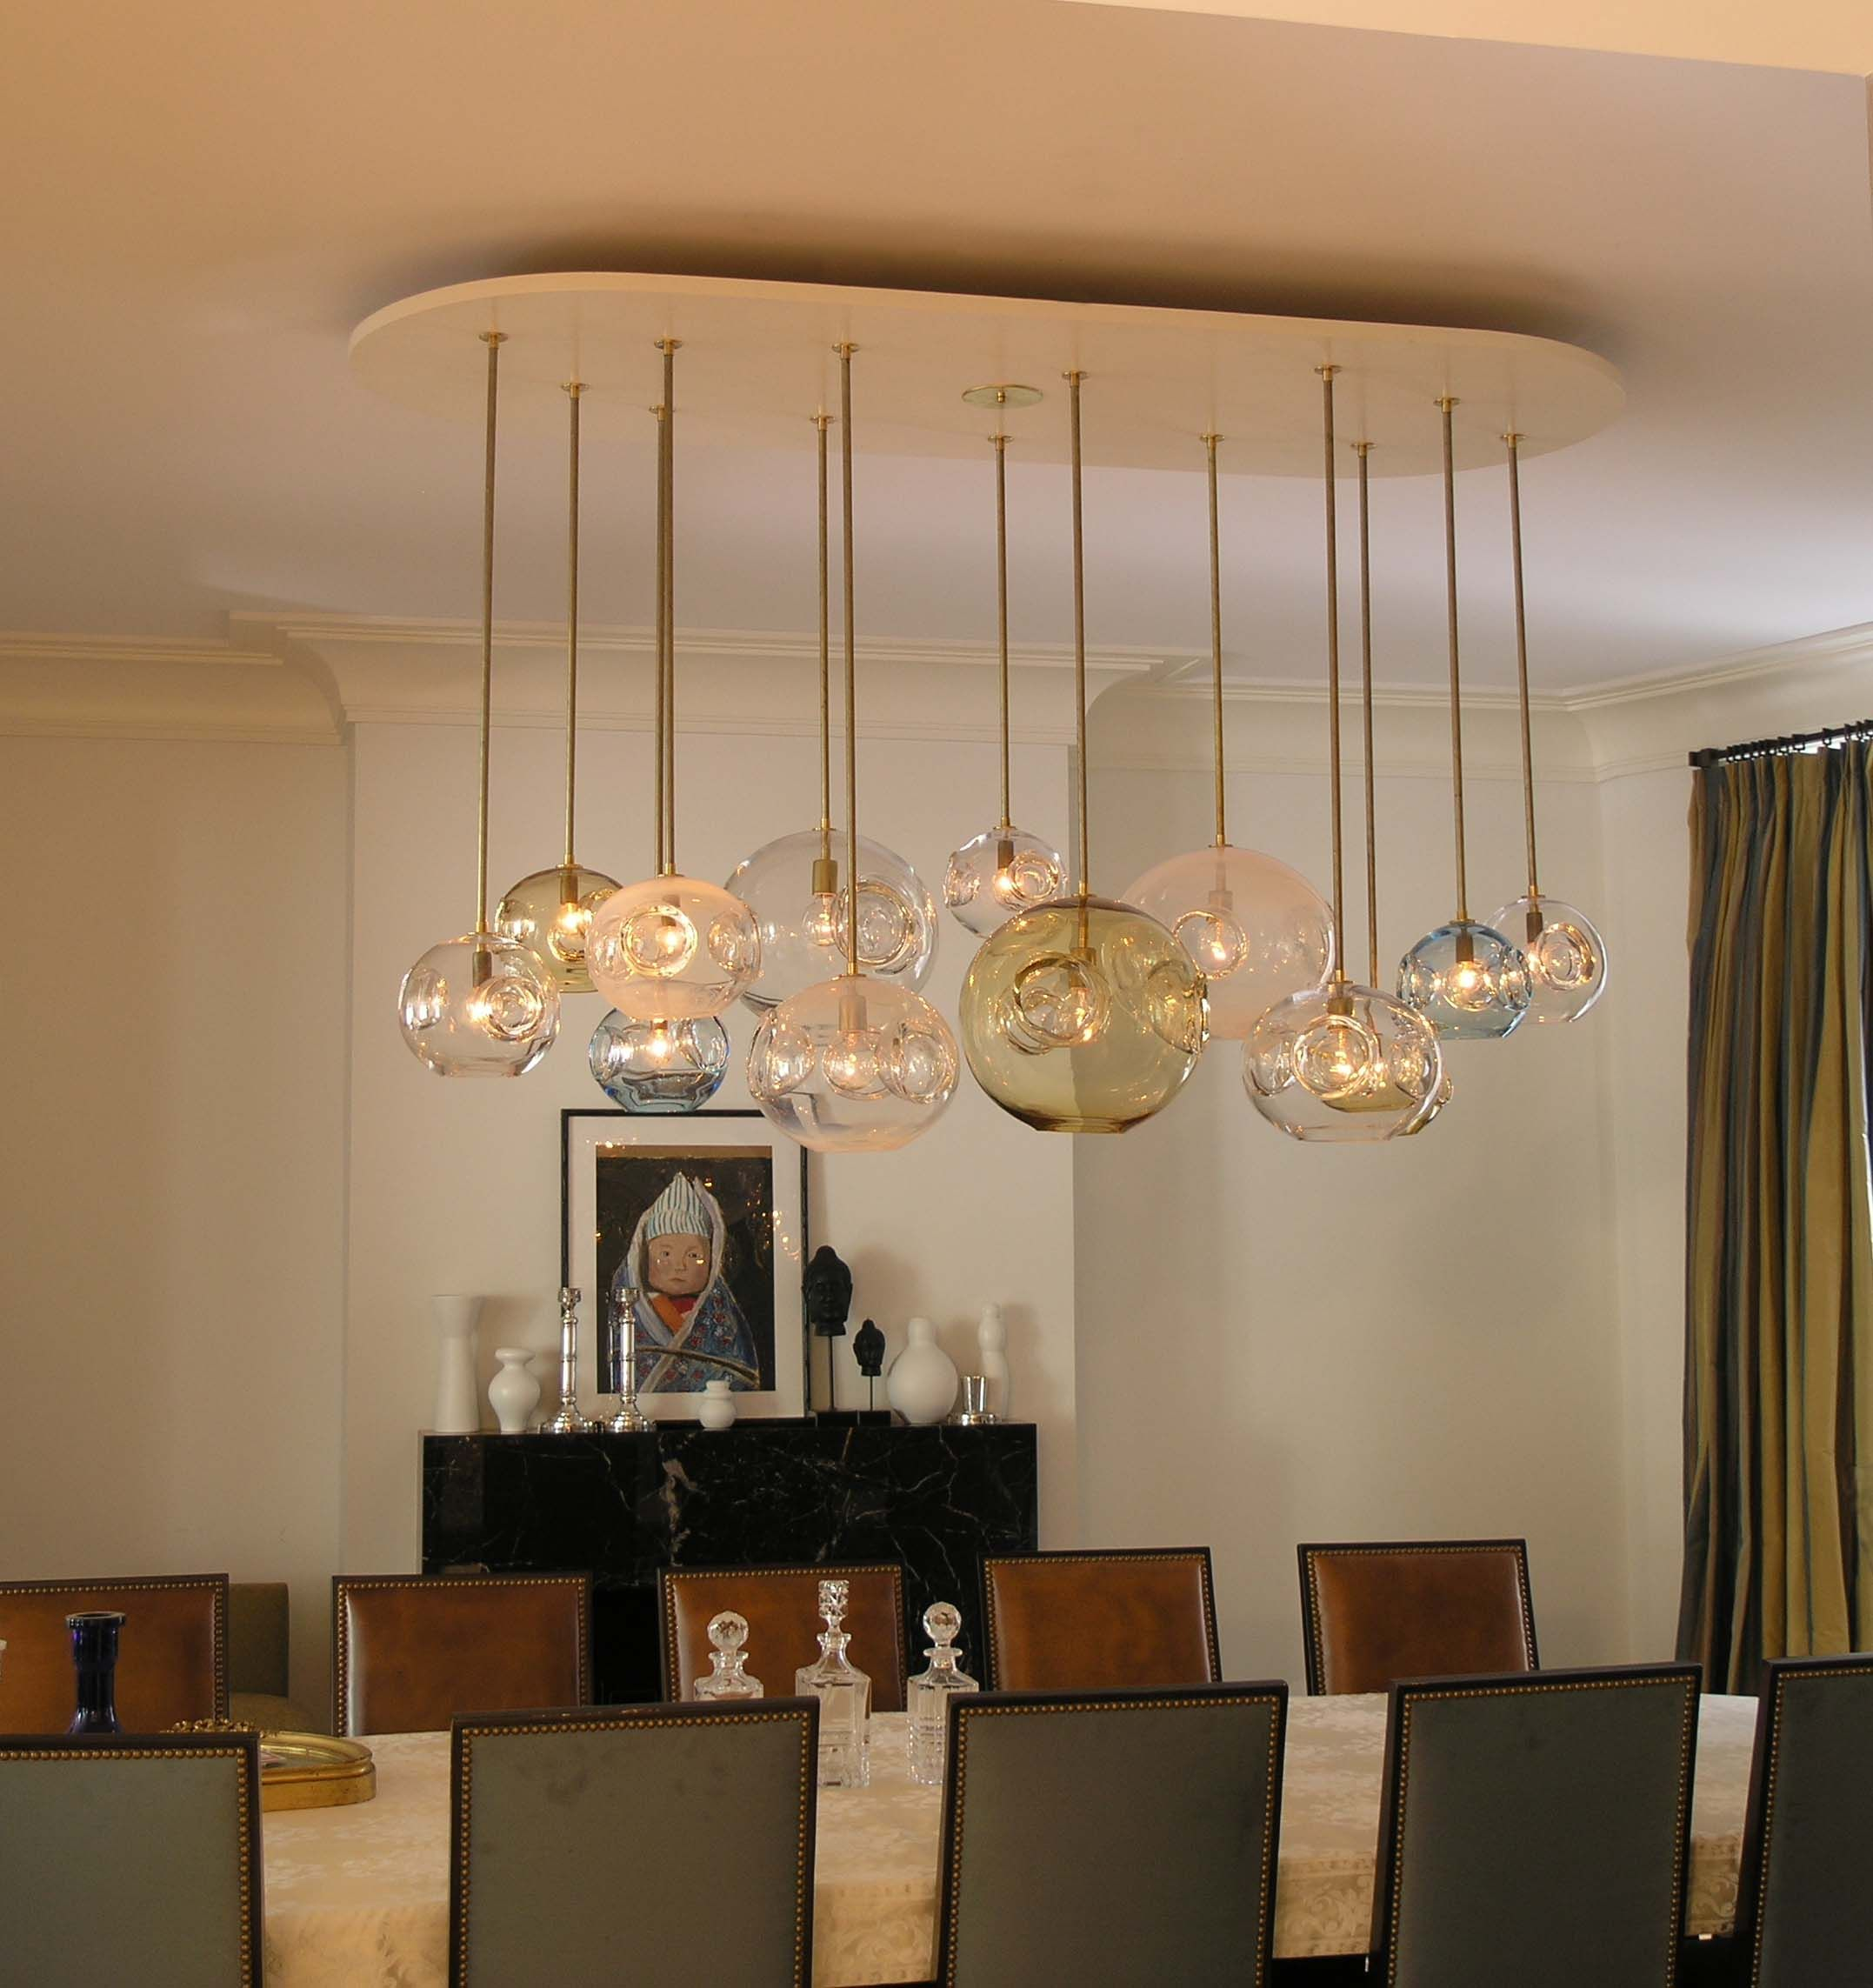 Best IdeaCheerful Idea Dining Room Lightning Designlightning Ball